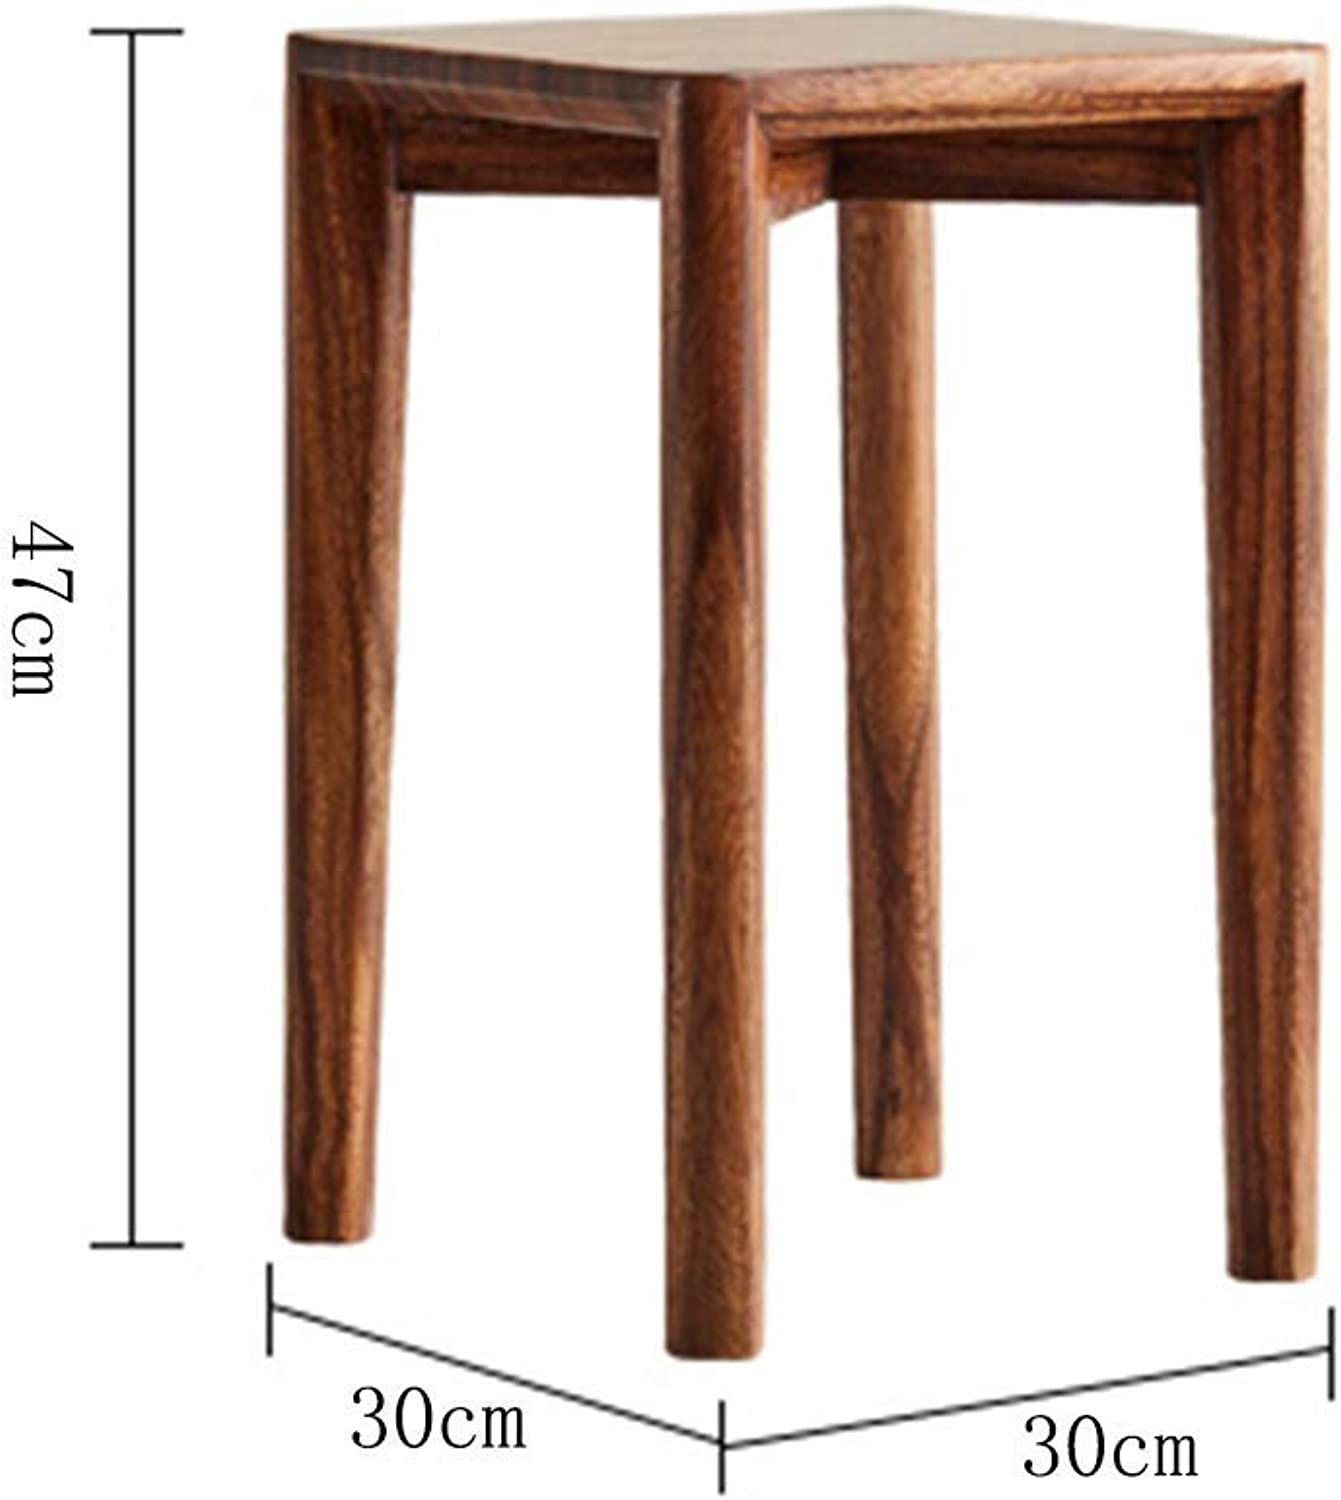 JZX Small Bench, Home Living Room Solid Wood Stool, Multi-Function Footstool, Multi-Function Household Stool